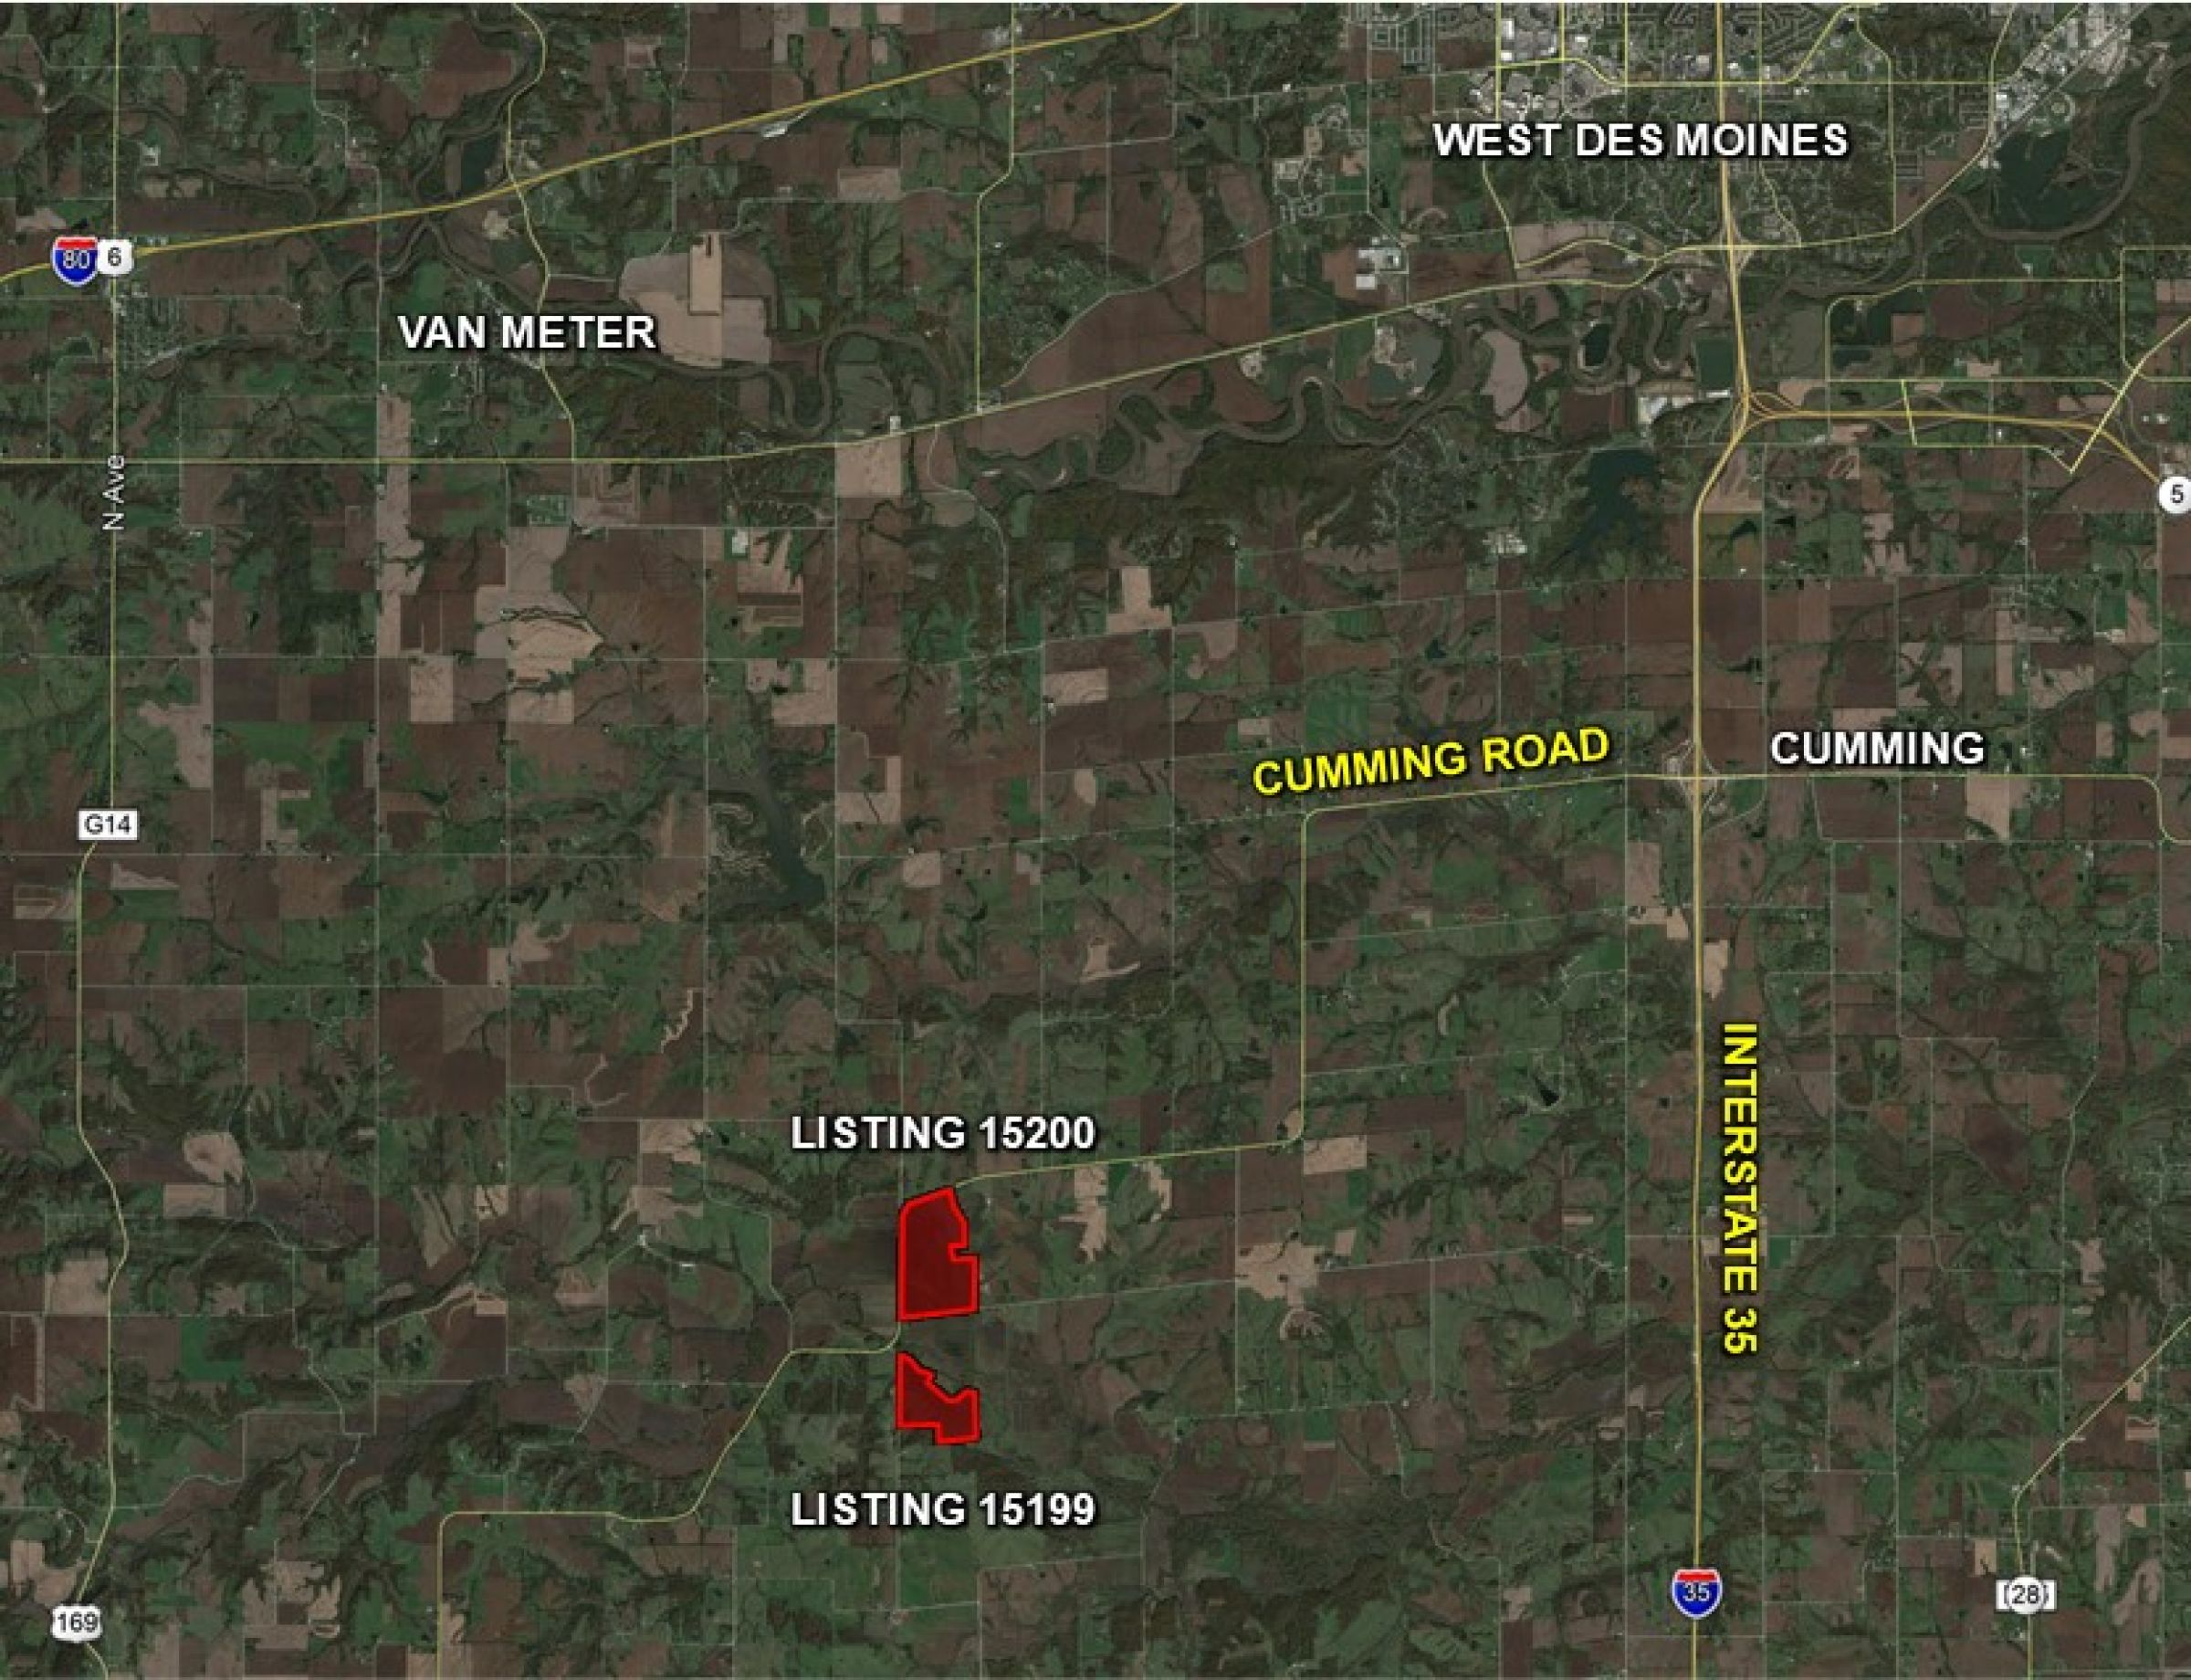 development-land-madison-county-iowa-267-acres-listing-number-15200-2-2020-10-06-184609.jpg